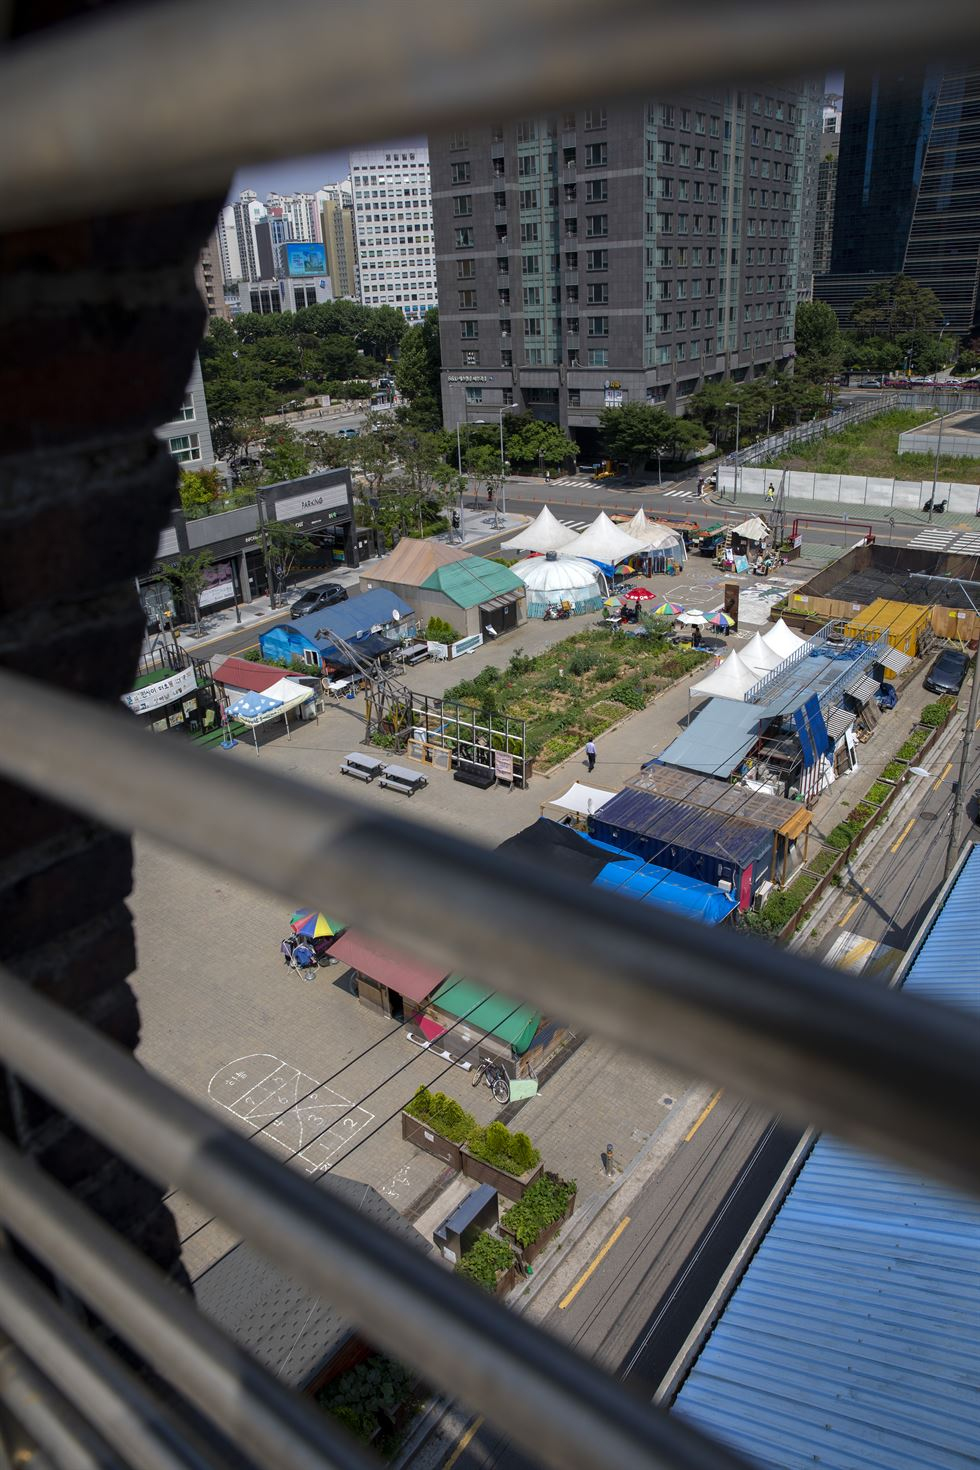 Lee Hee-sung, who calls himself a 'city refugee,' stands outside his container home on the Gyeongui Line Commons, June 13.  Korea Times photo by Shim Hyun-chul